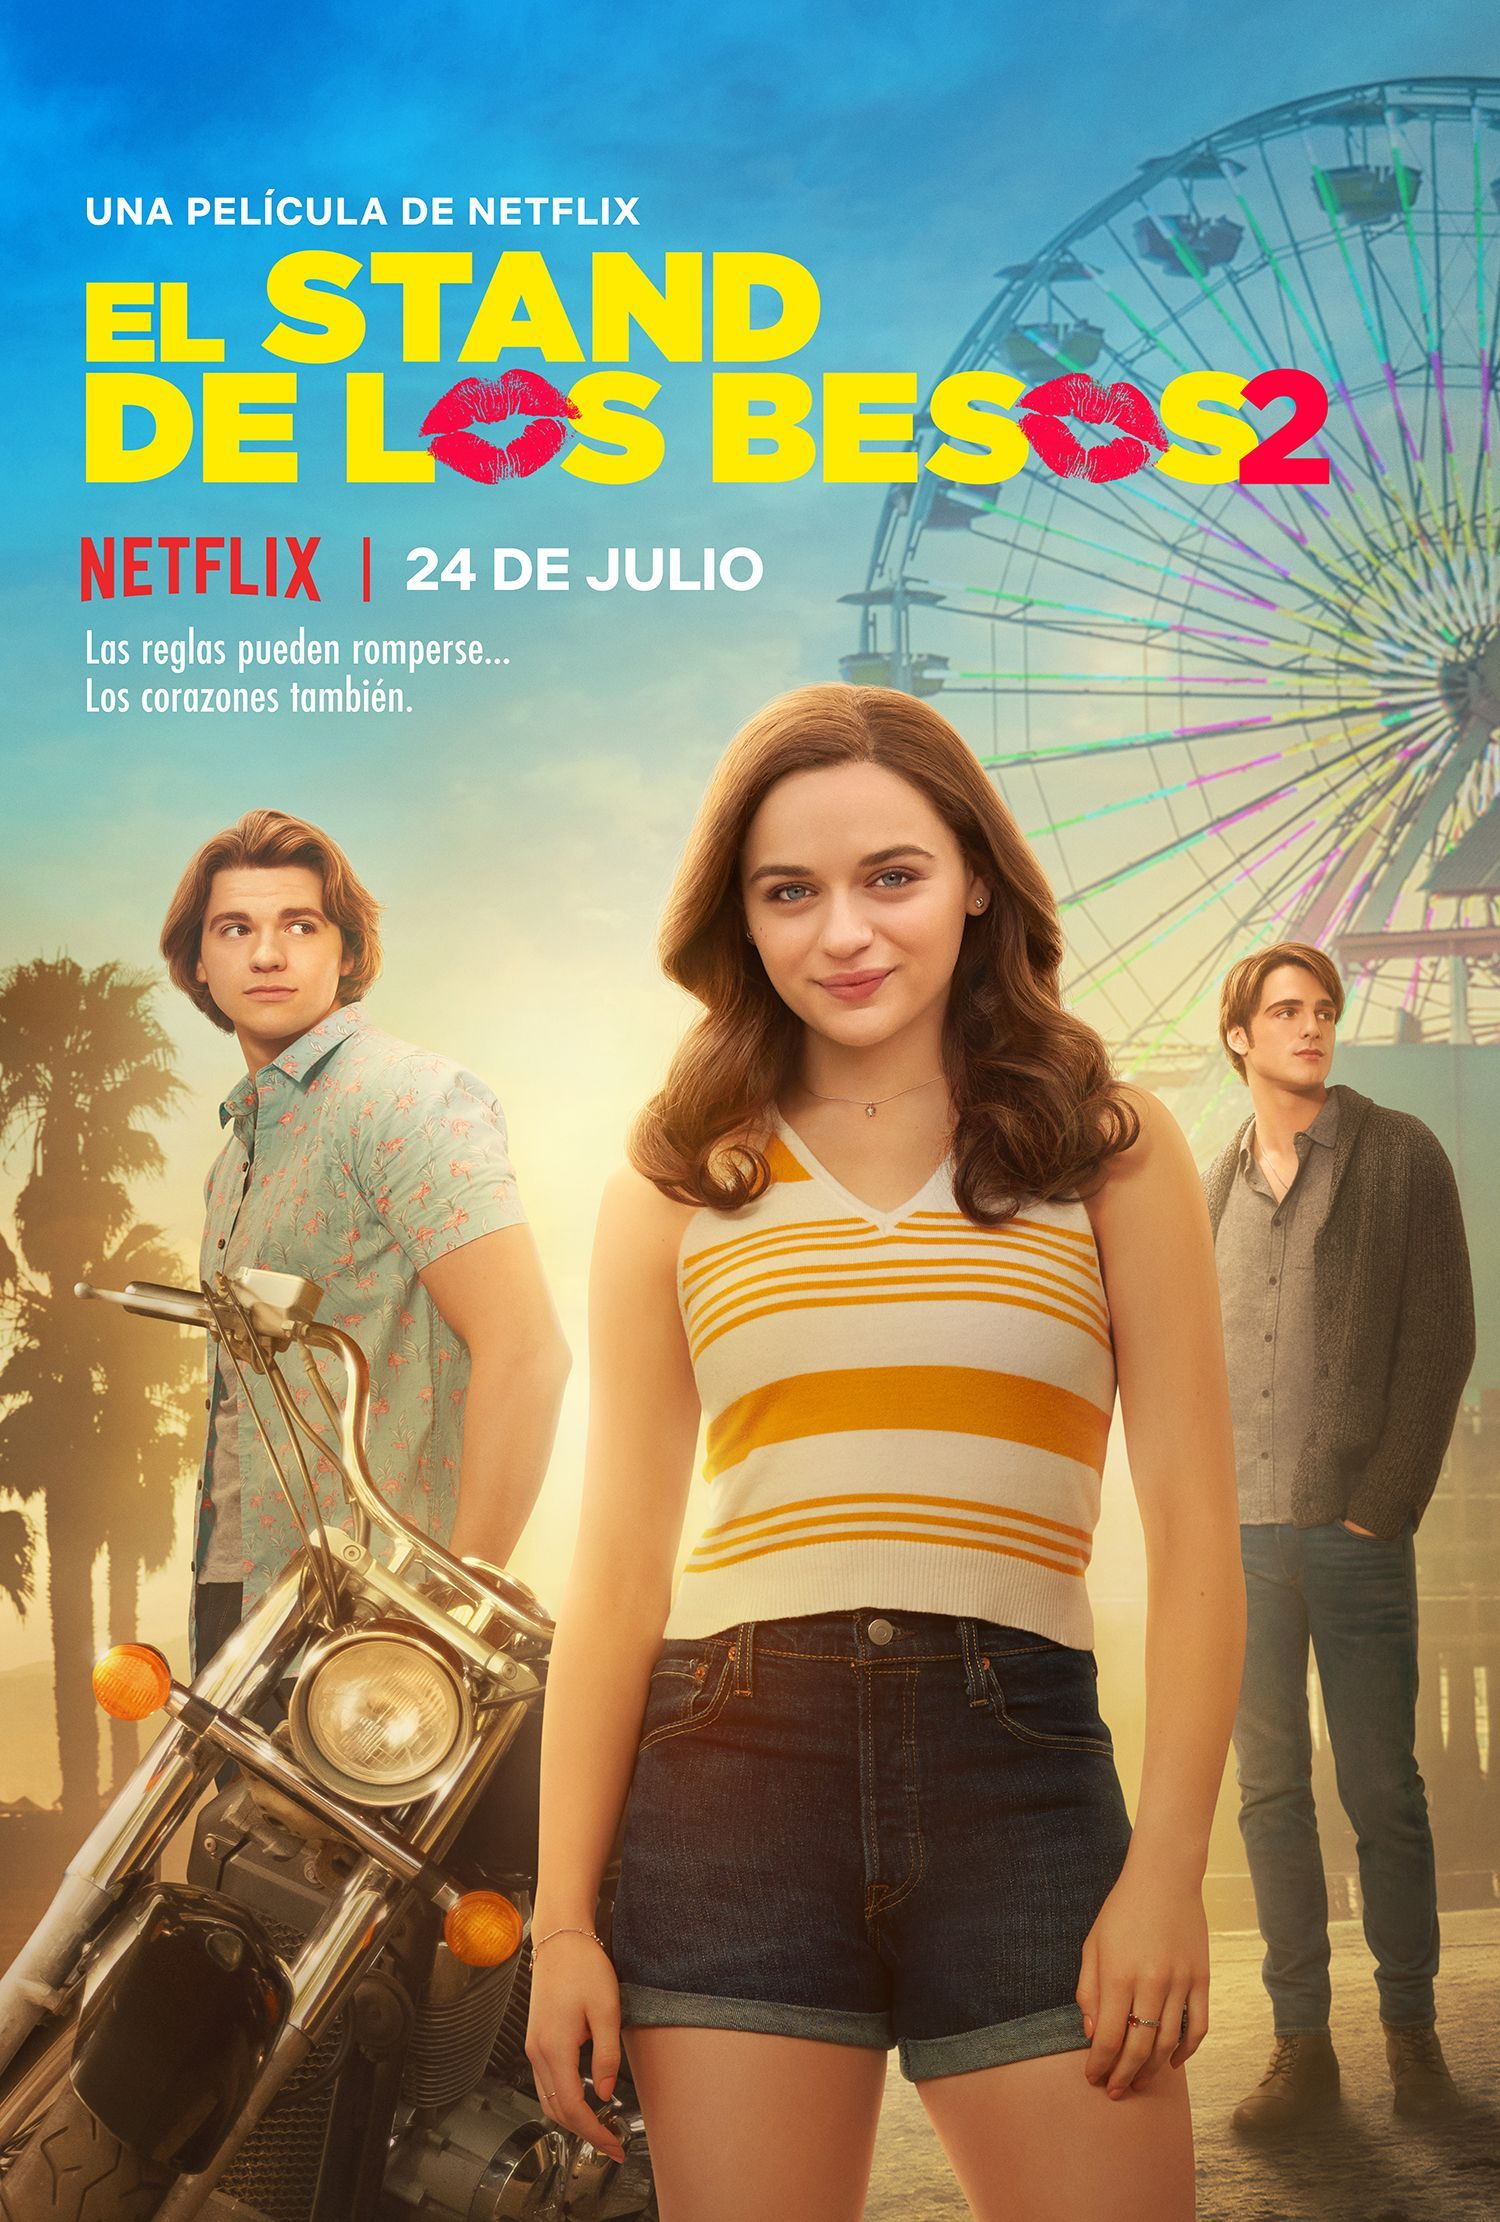 Https I Pinimg Com Originals 95 A6 97 95a697c2d72bf469b1c794b2bd8d150a Jpg Kissing Booth 2 Movie Joey King